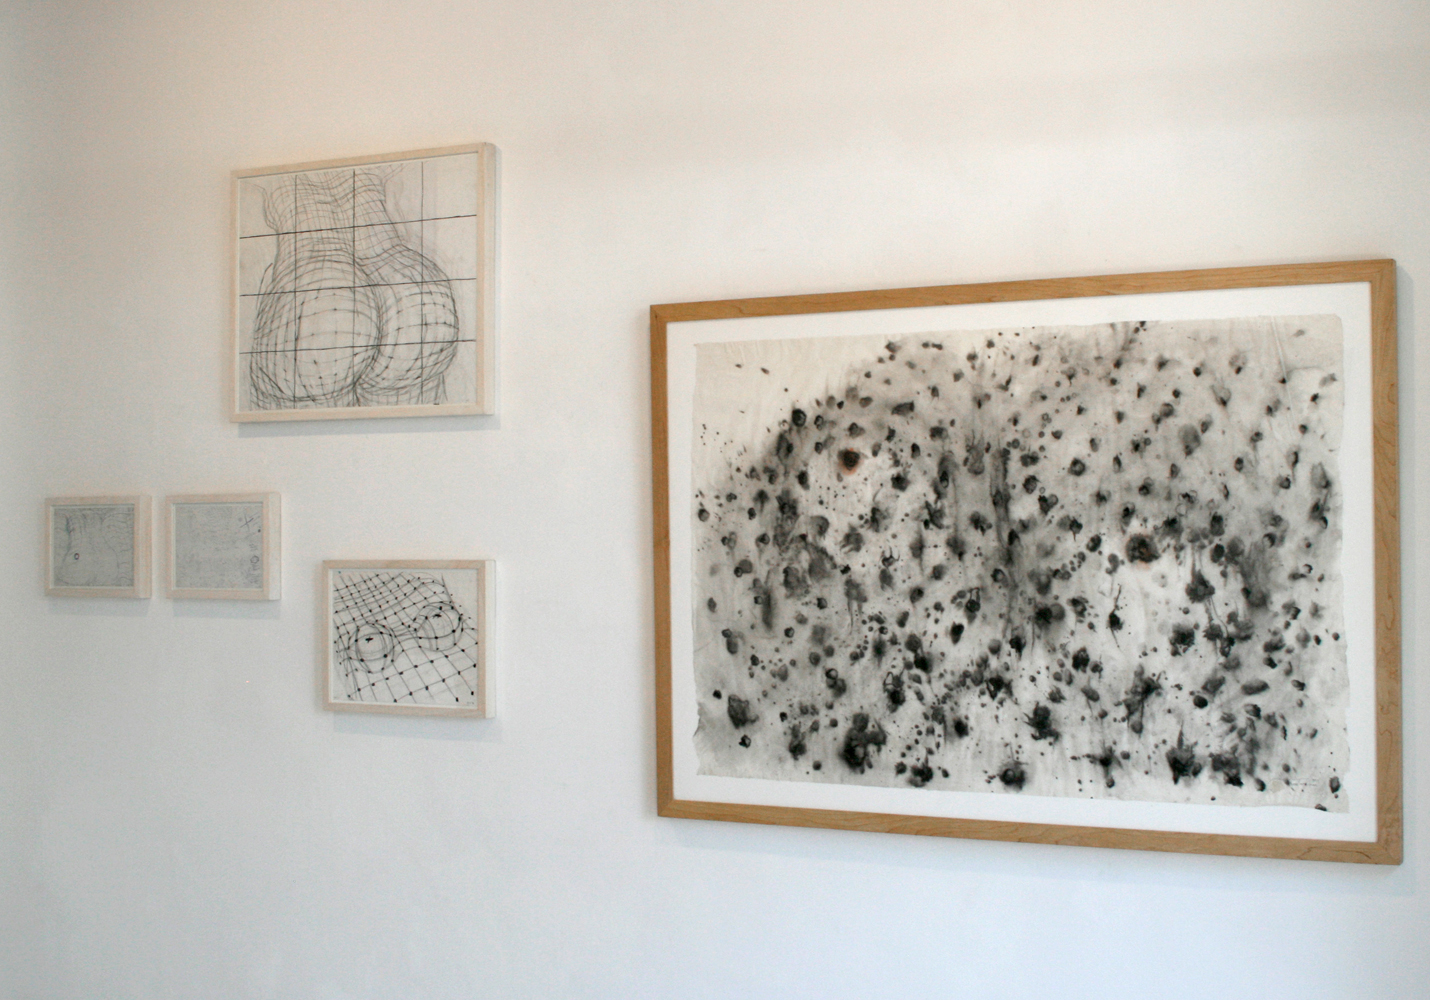 Tintas. El melic del mon, from the exhibition Escombrar, Galería Maior Pollença, 2009